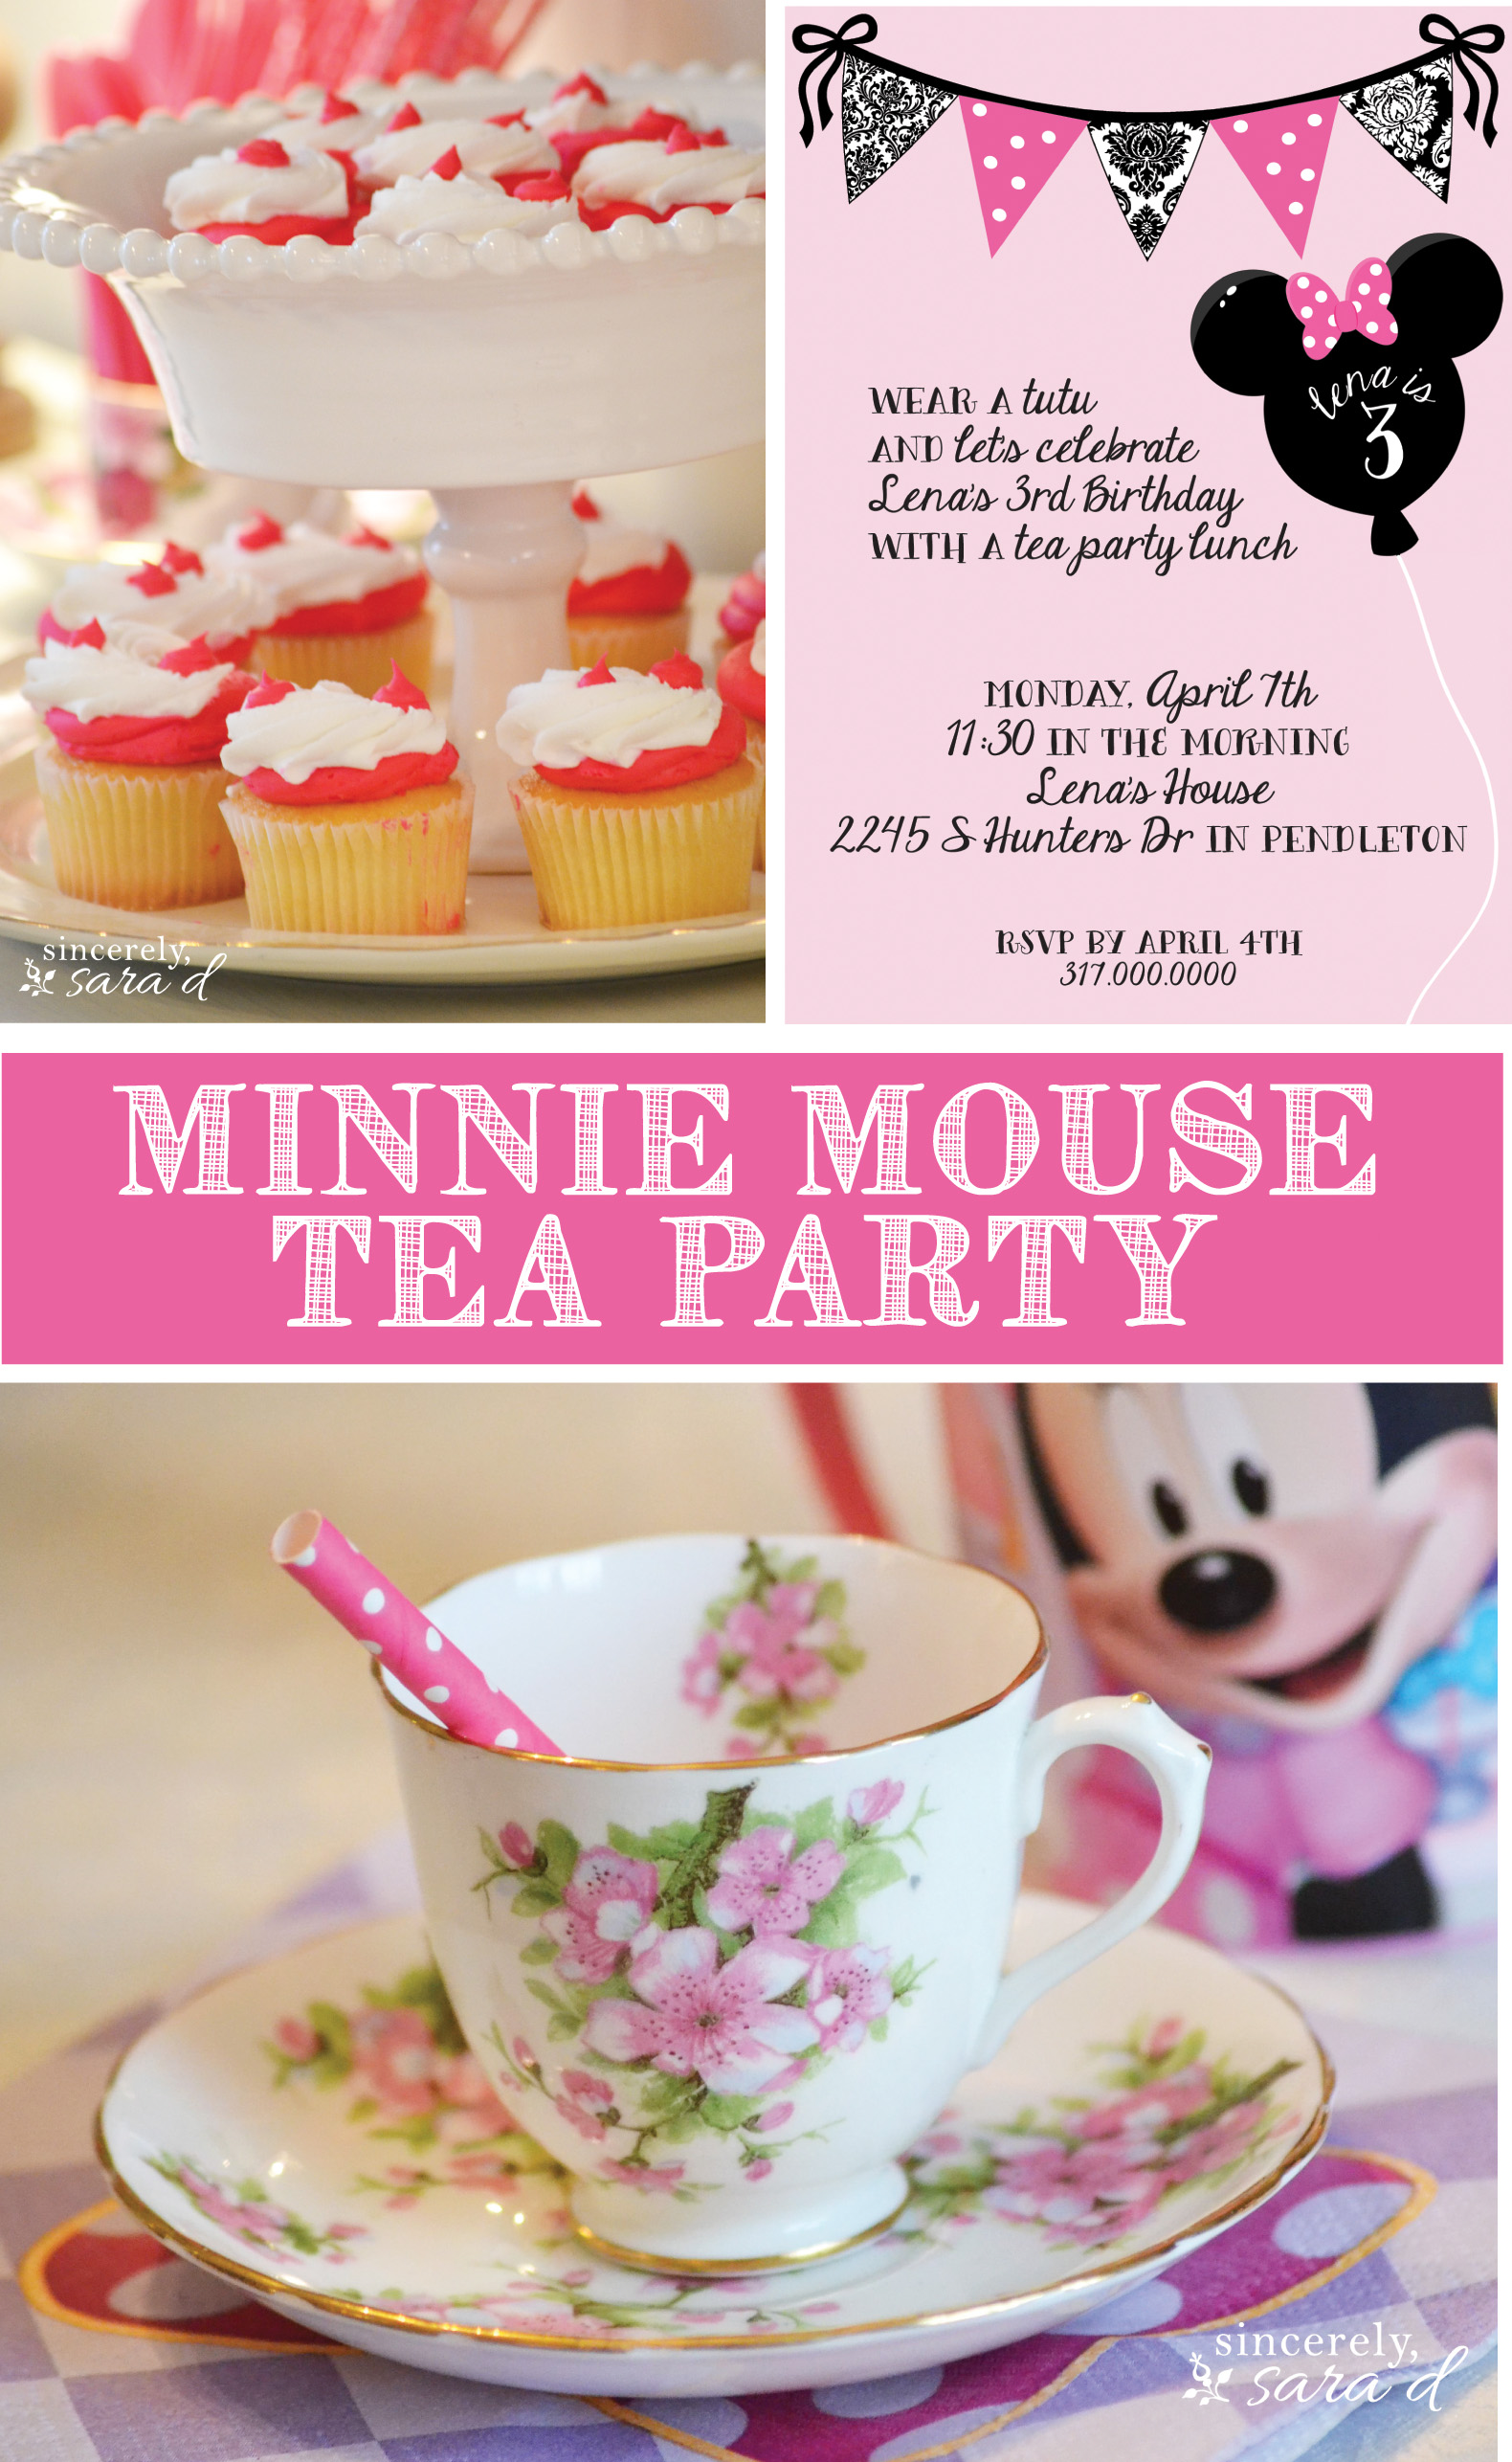 Minnie Mouse Invitations Etsy is amazing invitations example